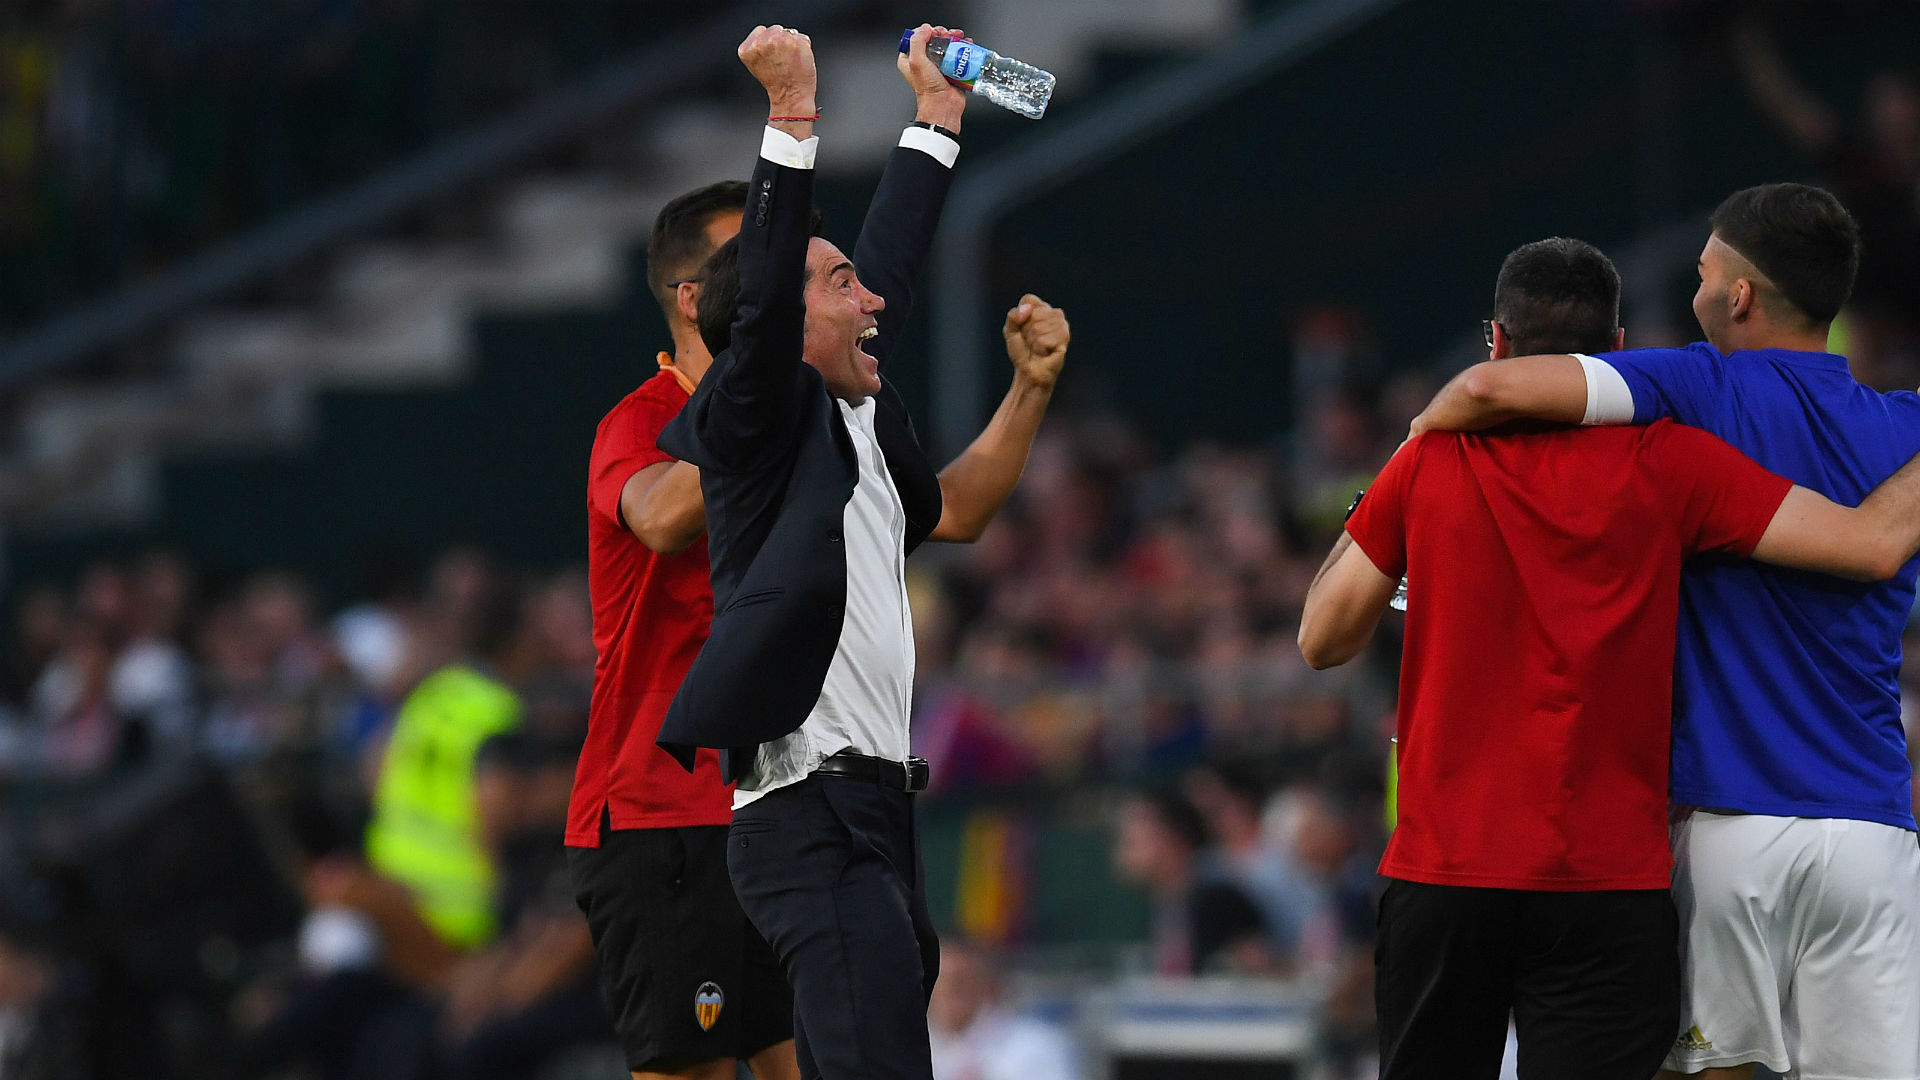 Marcelino convinced he was sacked by Valencia for winning Copa del Rey